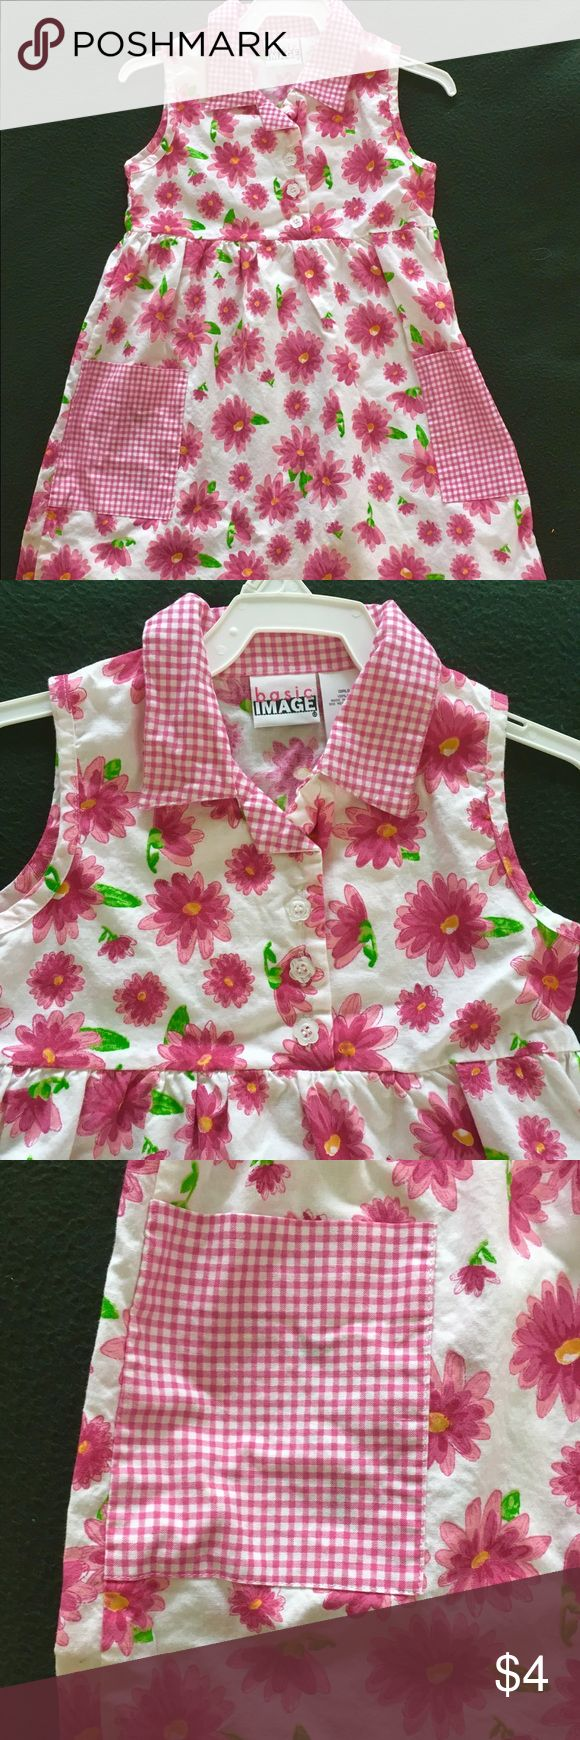 *Kids* 🌸🌸 Pink floral dress 🌸🌸 *Kids* 🌸🌸 Pink floral dress 🌸🌸. Super cute pink and white floral dress with plaid collar and 3 flower shaped buttons going down the middle. So cute! Perfect for a kindergartner! As always, accepting offers and bundles! basic image Dresses Casual